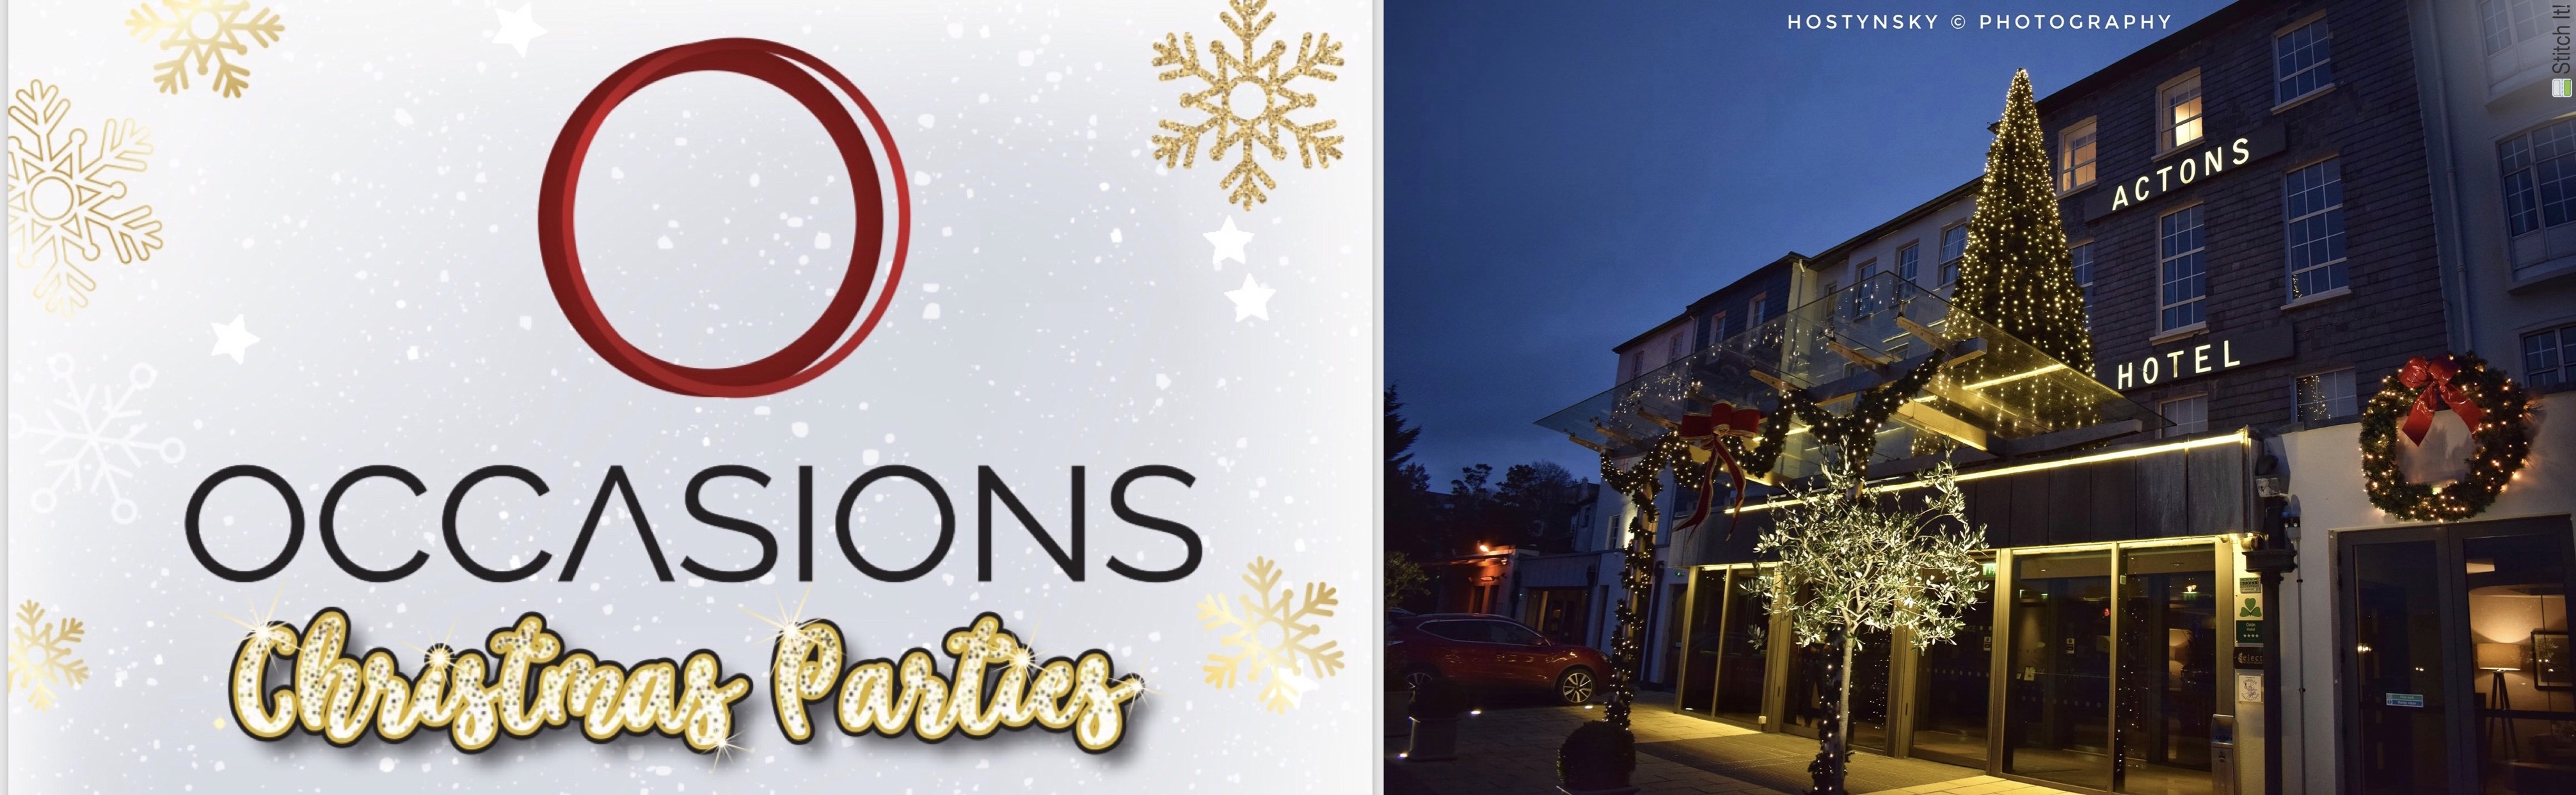 Occasions Christmas Parties - Actons Hotel Kinsale